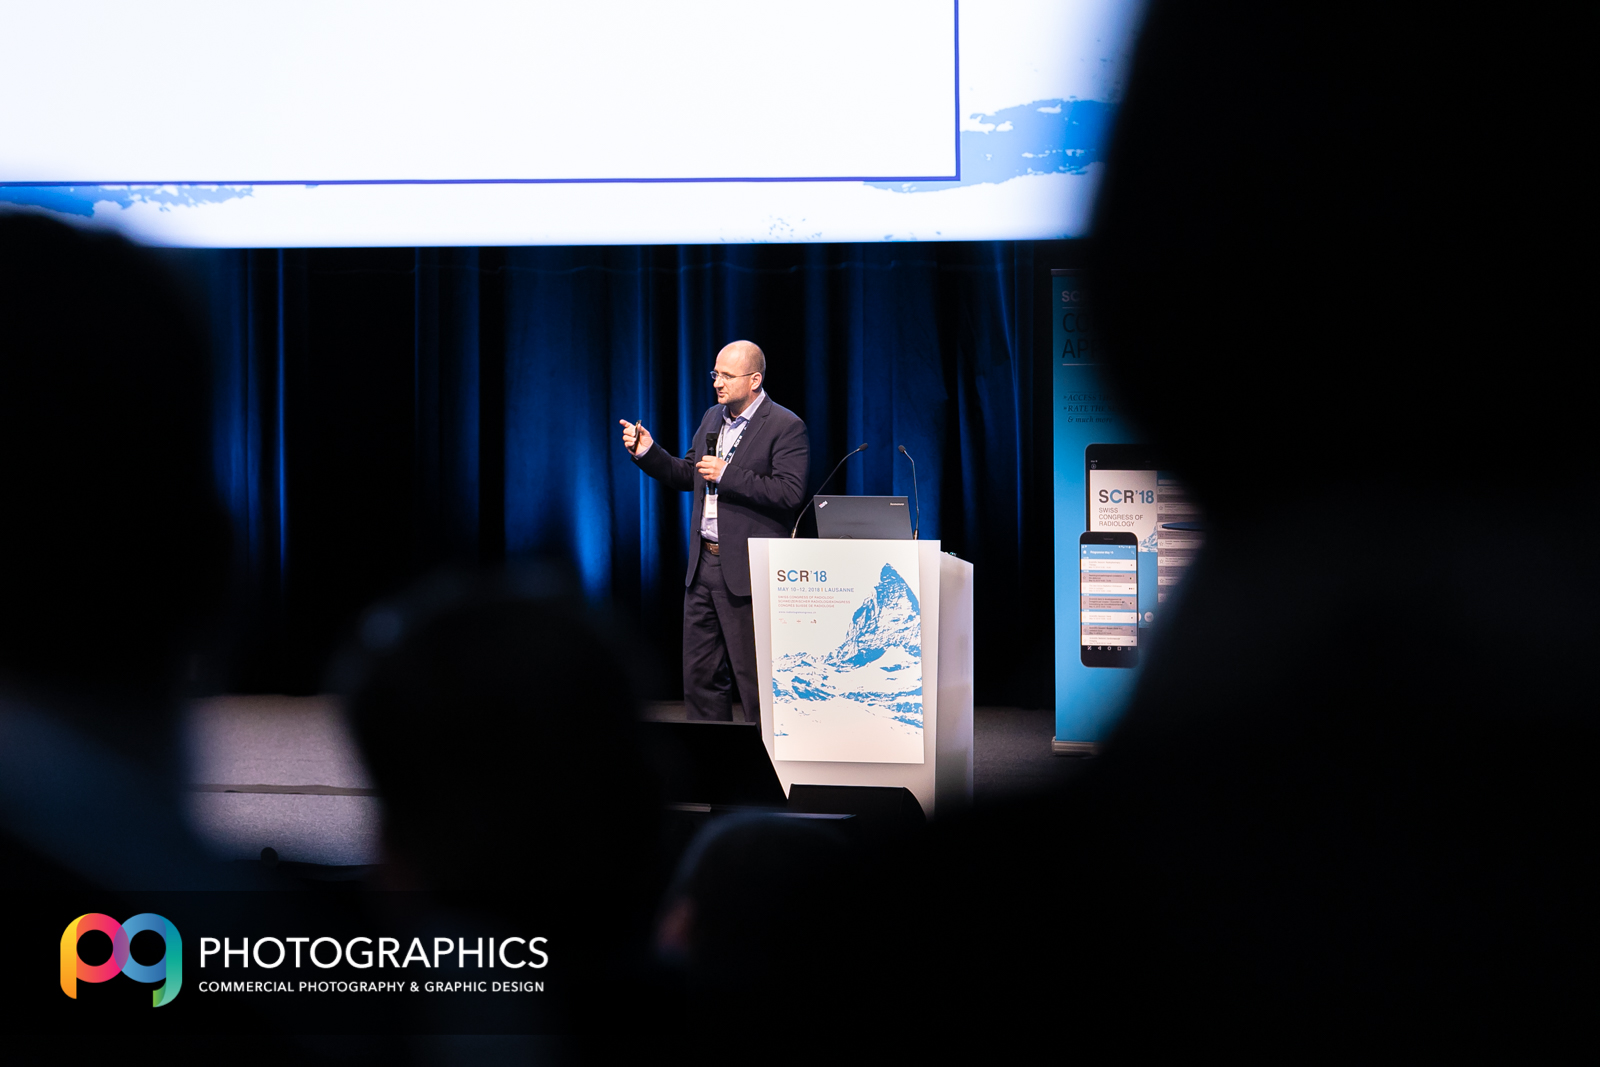 Conference-event-photography-glasgow-edinburgh-Lausanne-10.jpg